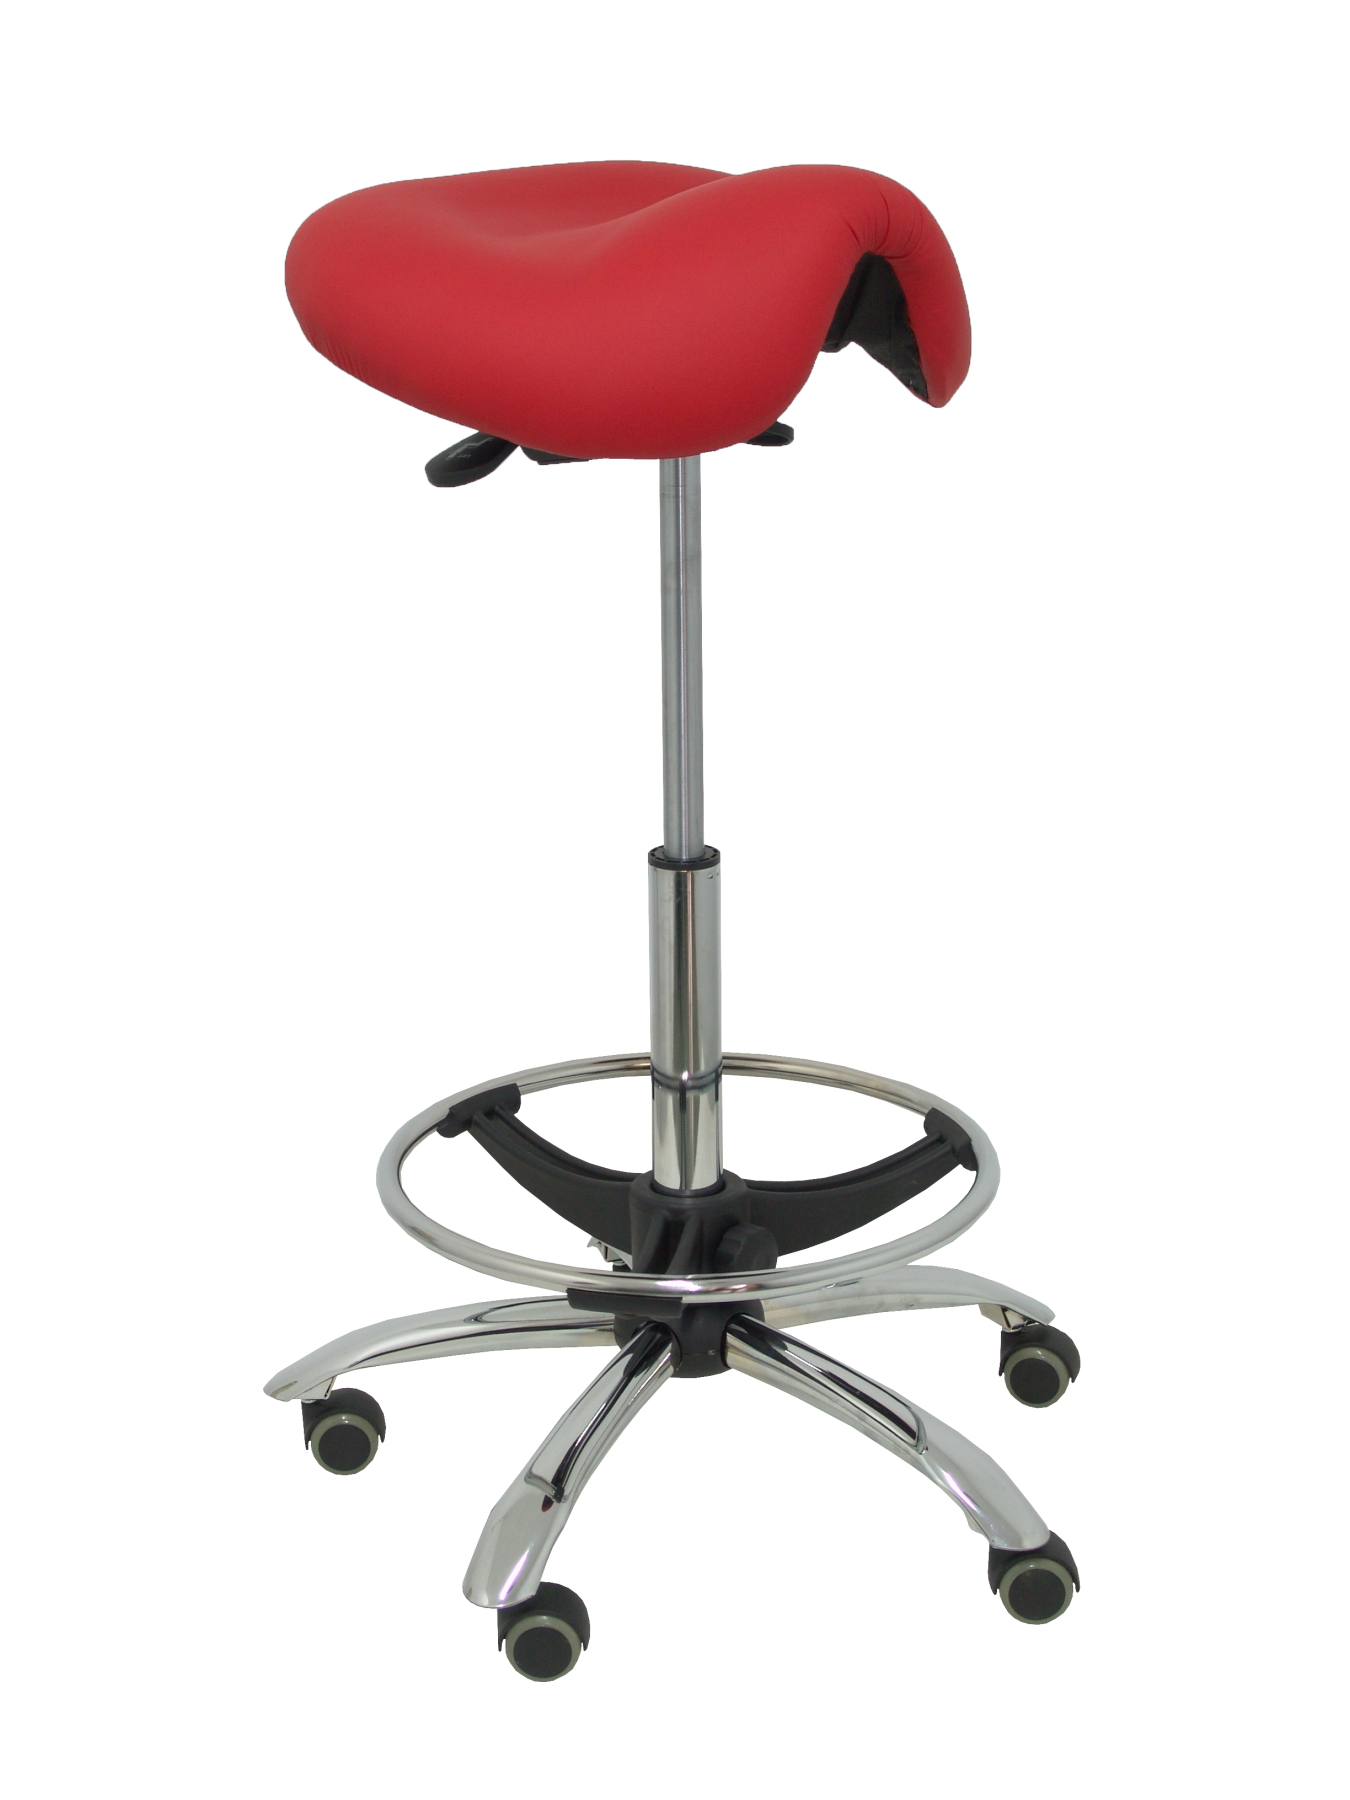 Stool Clinical Swivel And Ergonomic With Seat Anatomic And Dimmable In High Altitude (hoop Foot Pegs Chrome INCLUDED)